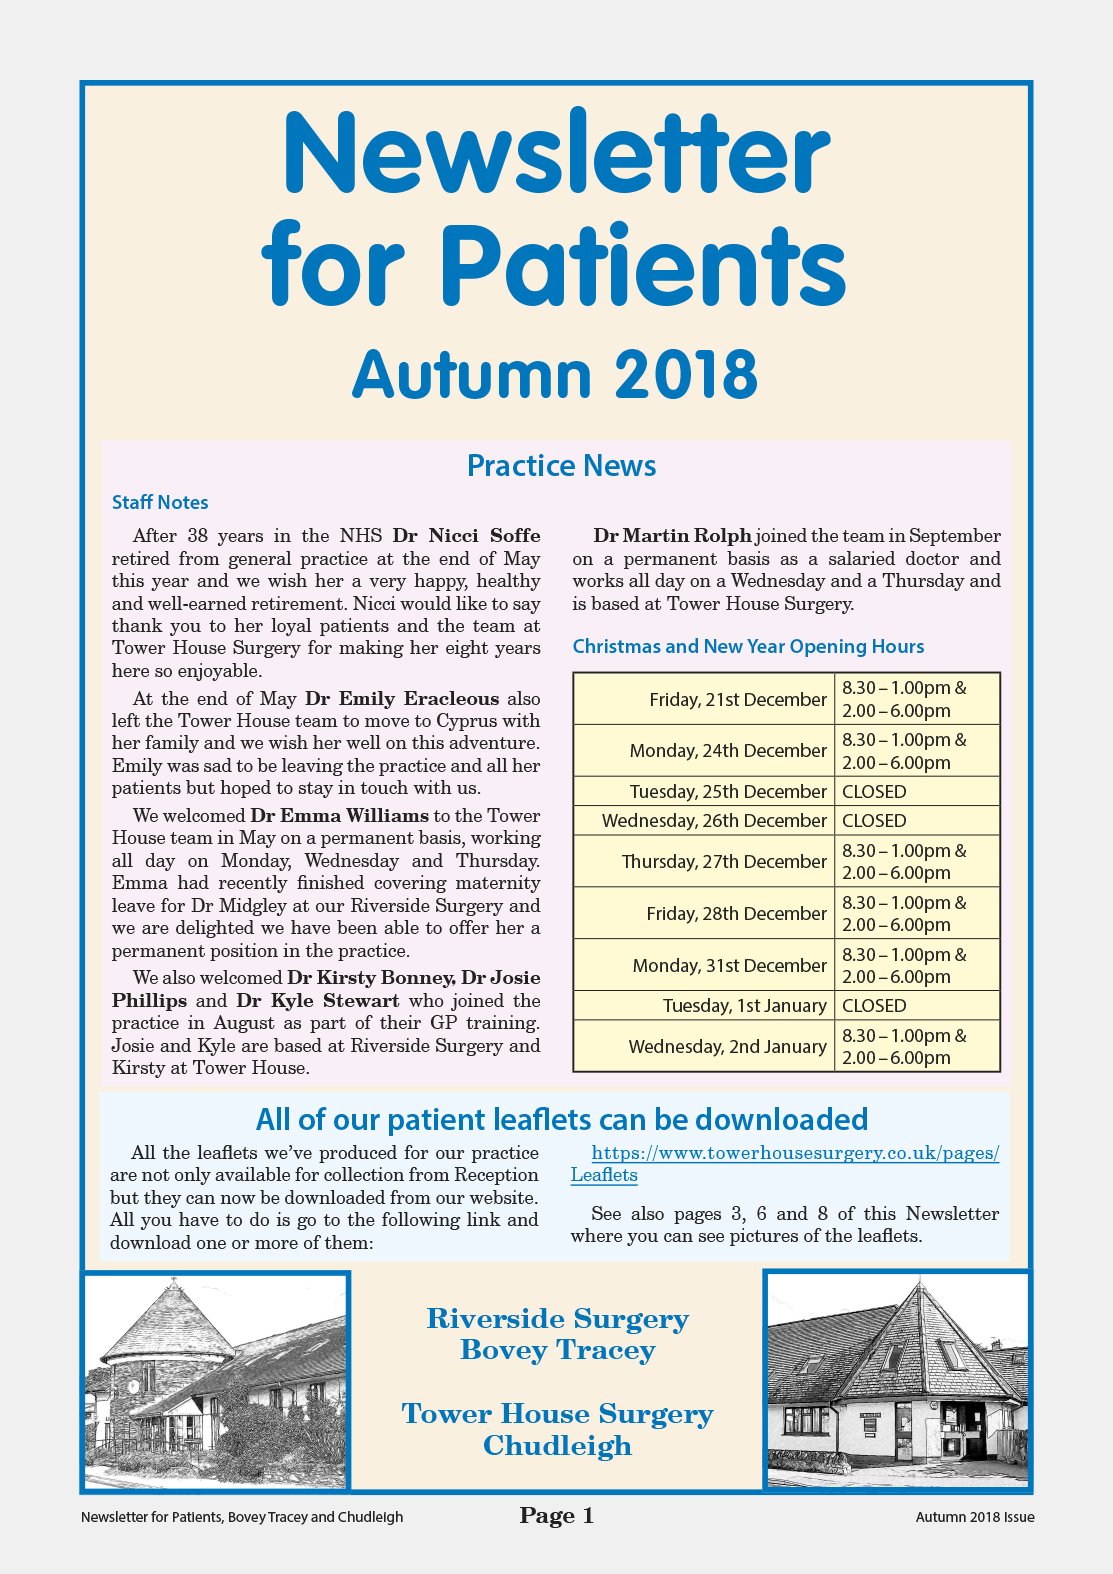 Autumn 2018 Newsletter